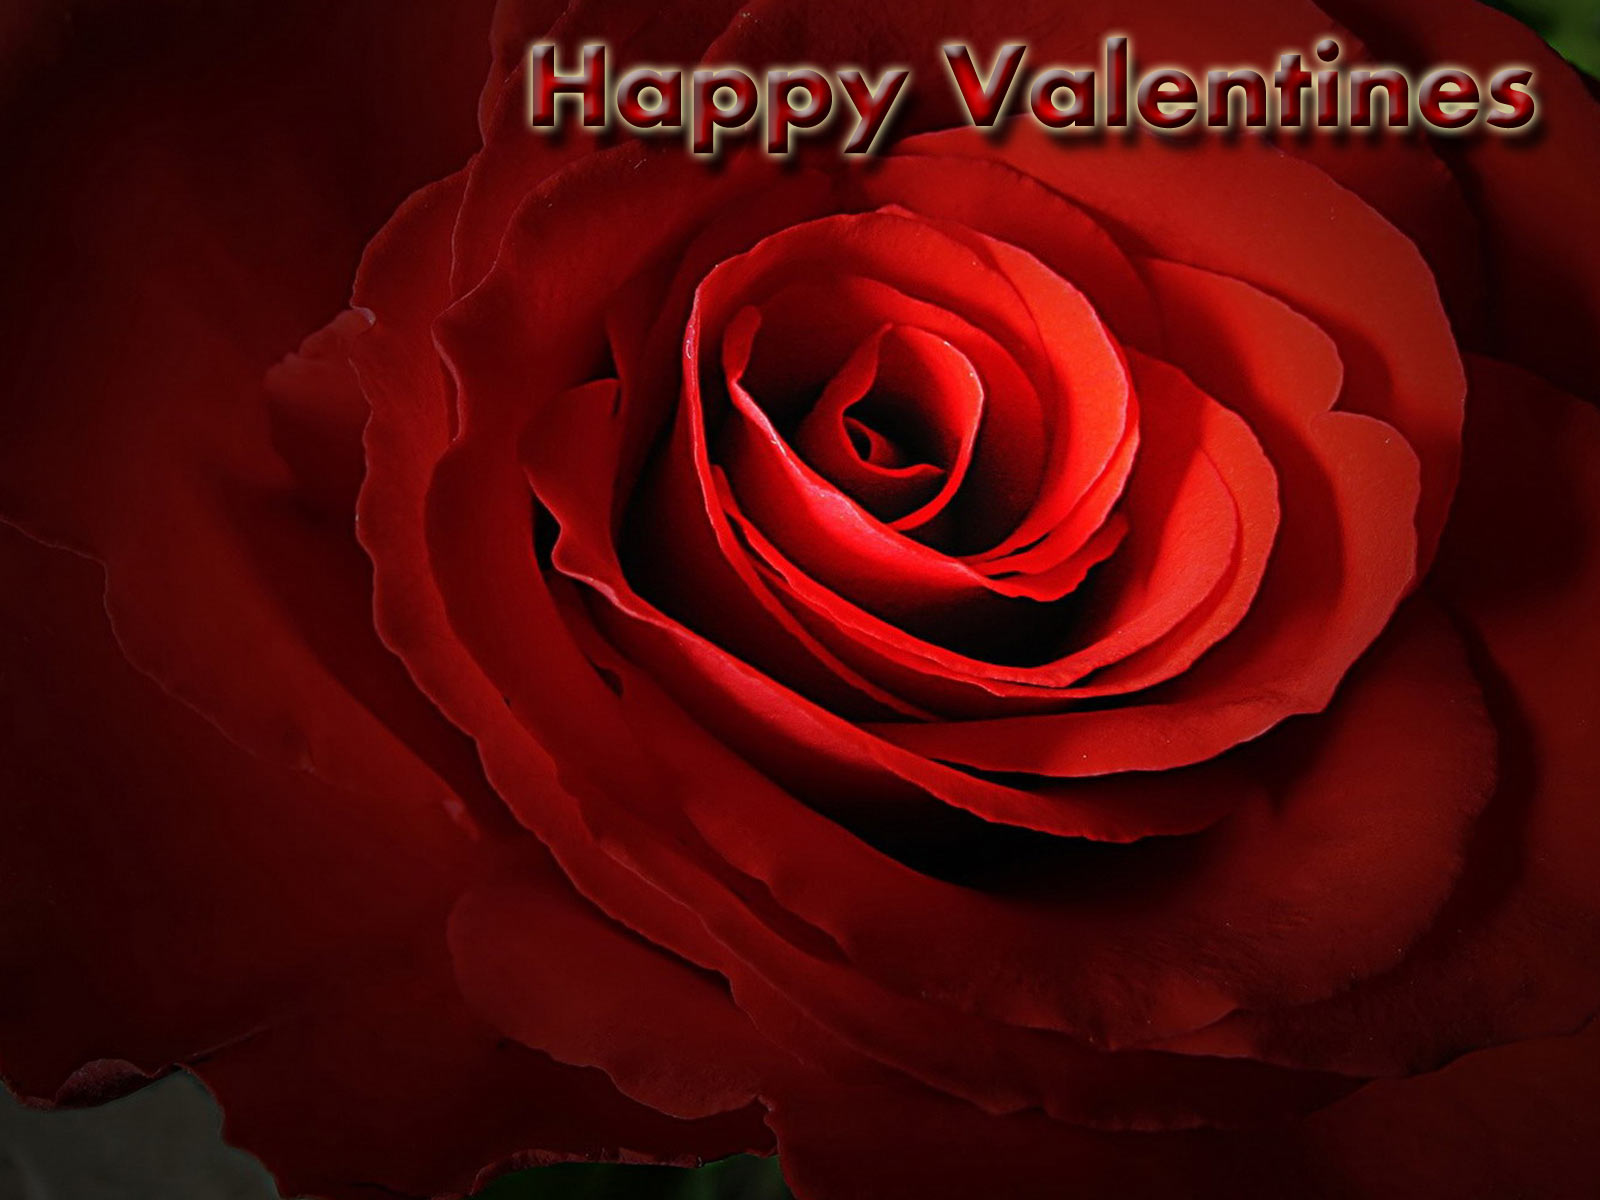 roses wallpapers valentine special wallpapers valentine wallpaper 1600x1200